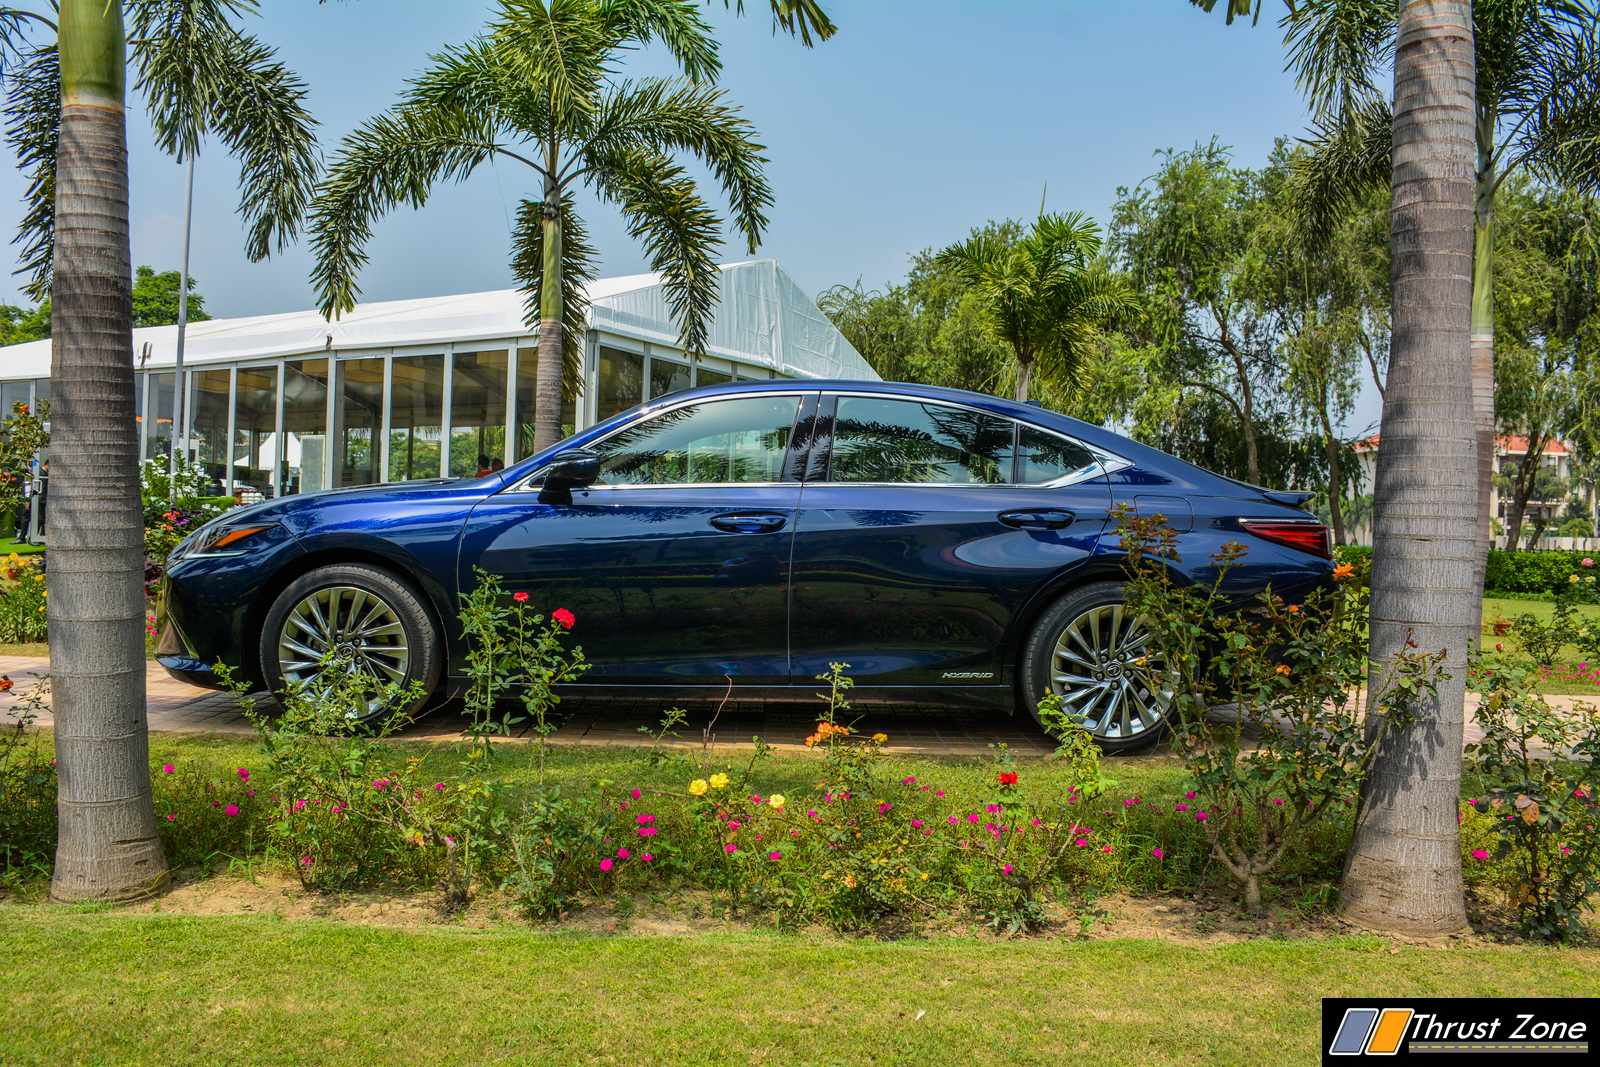 https://www.thrustzone.com/wp-content/uploads/2018/09/2019-Lexus-ES-India-300h-Review-4.jpg